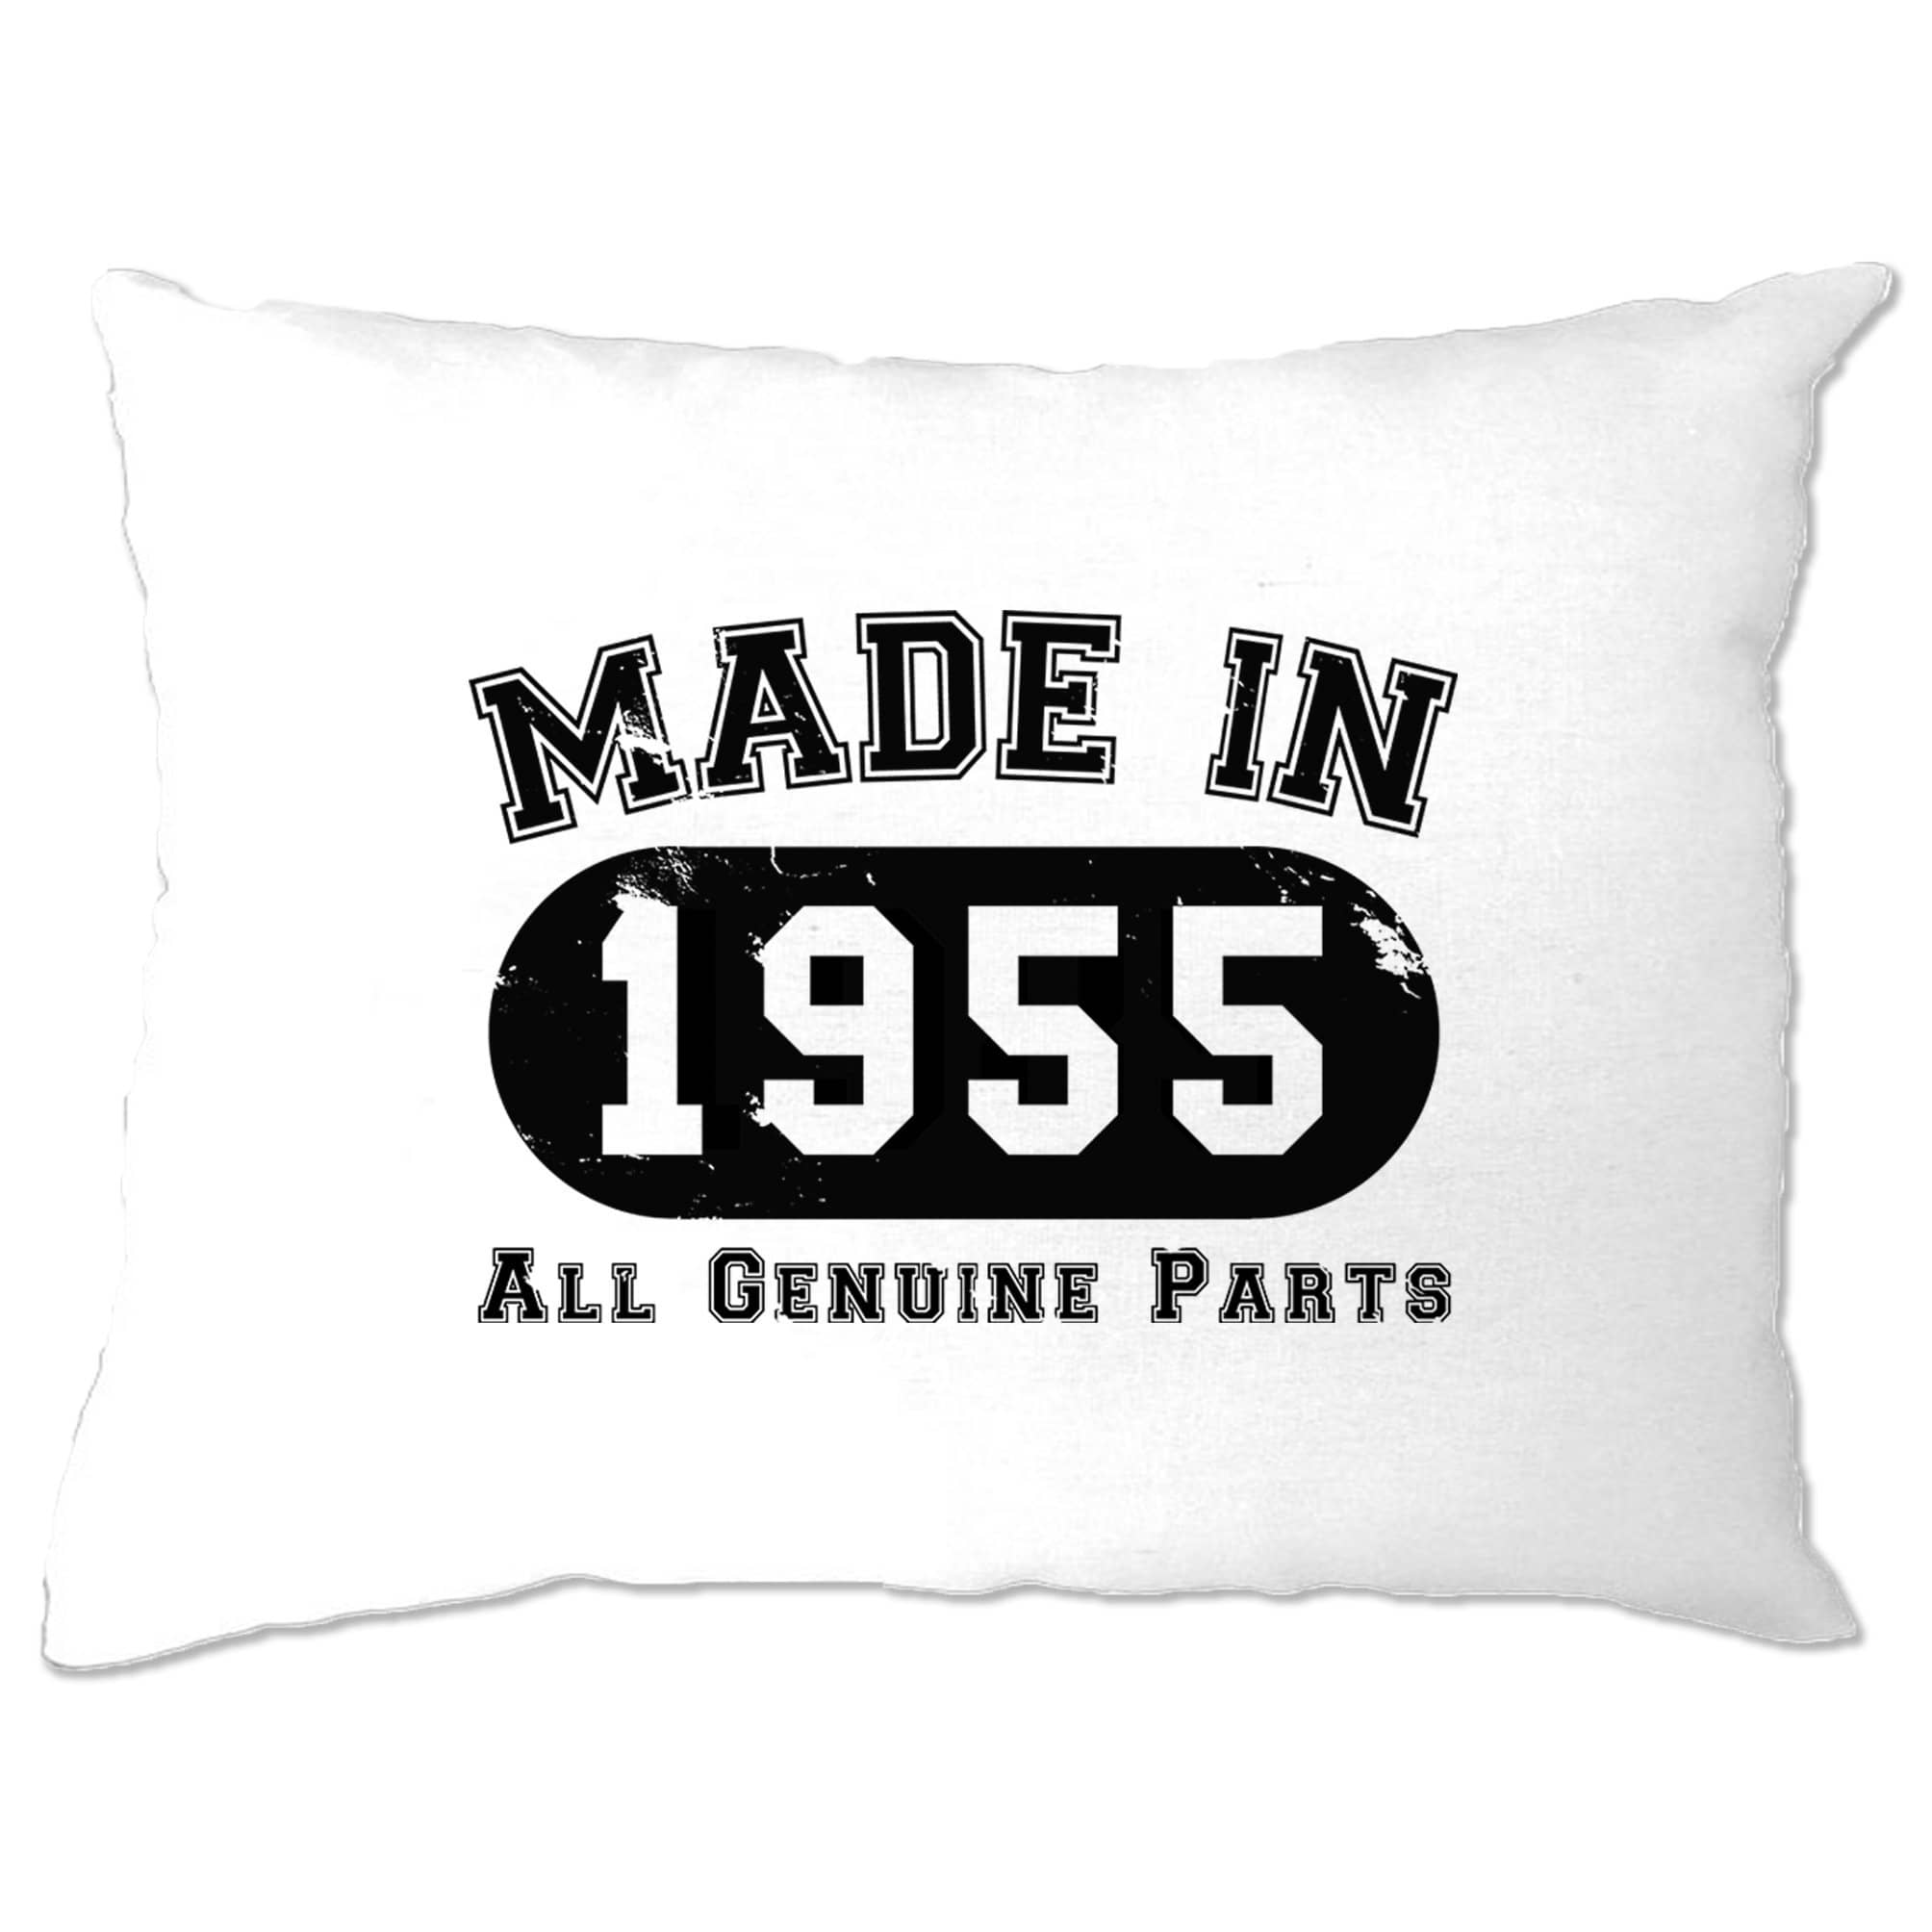 Birthday Pillow Case Made in 1955 All Genuine Parts